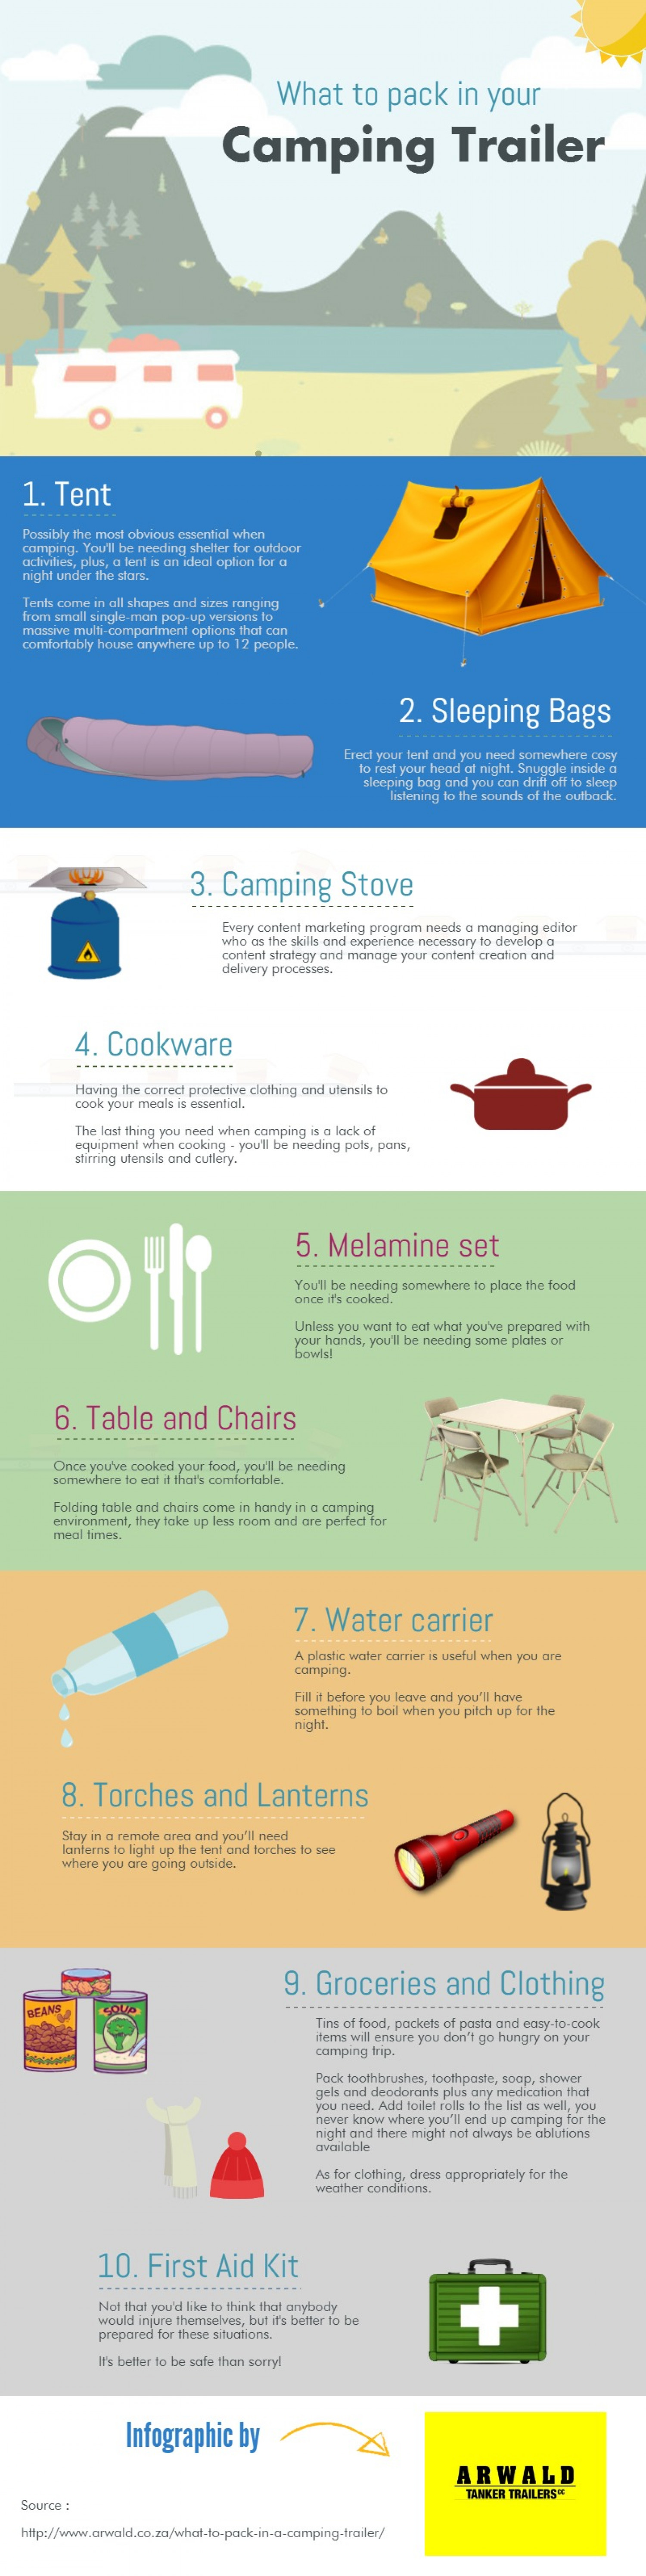 What To Pack In Your Camping Trailer Infographic